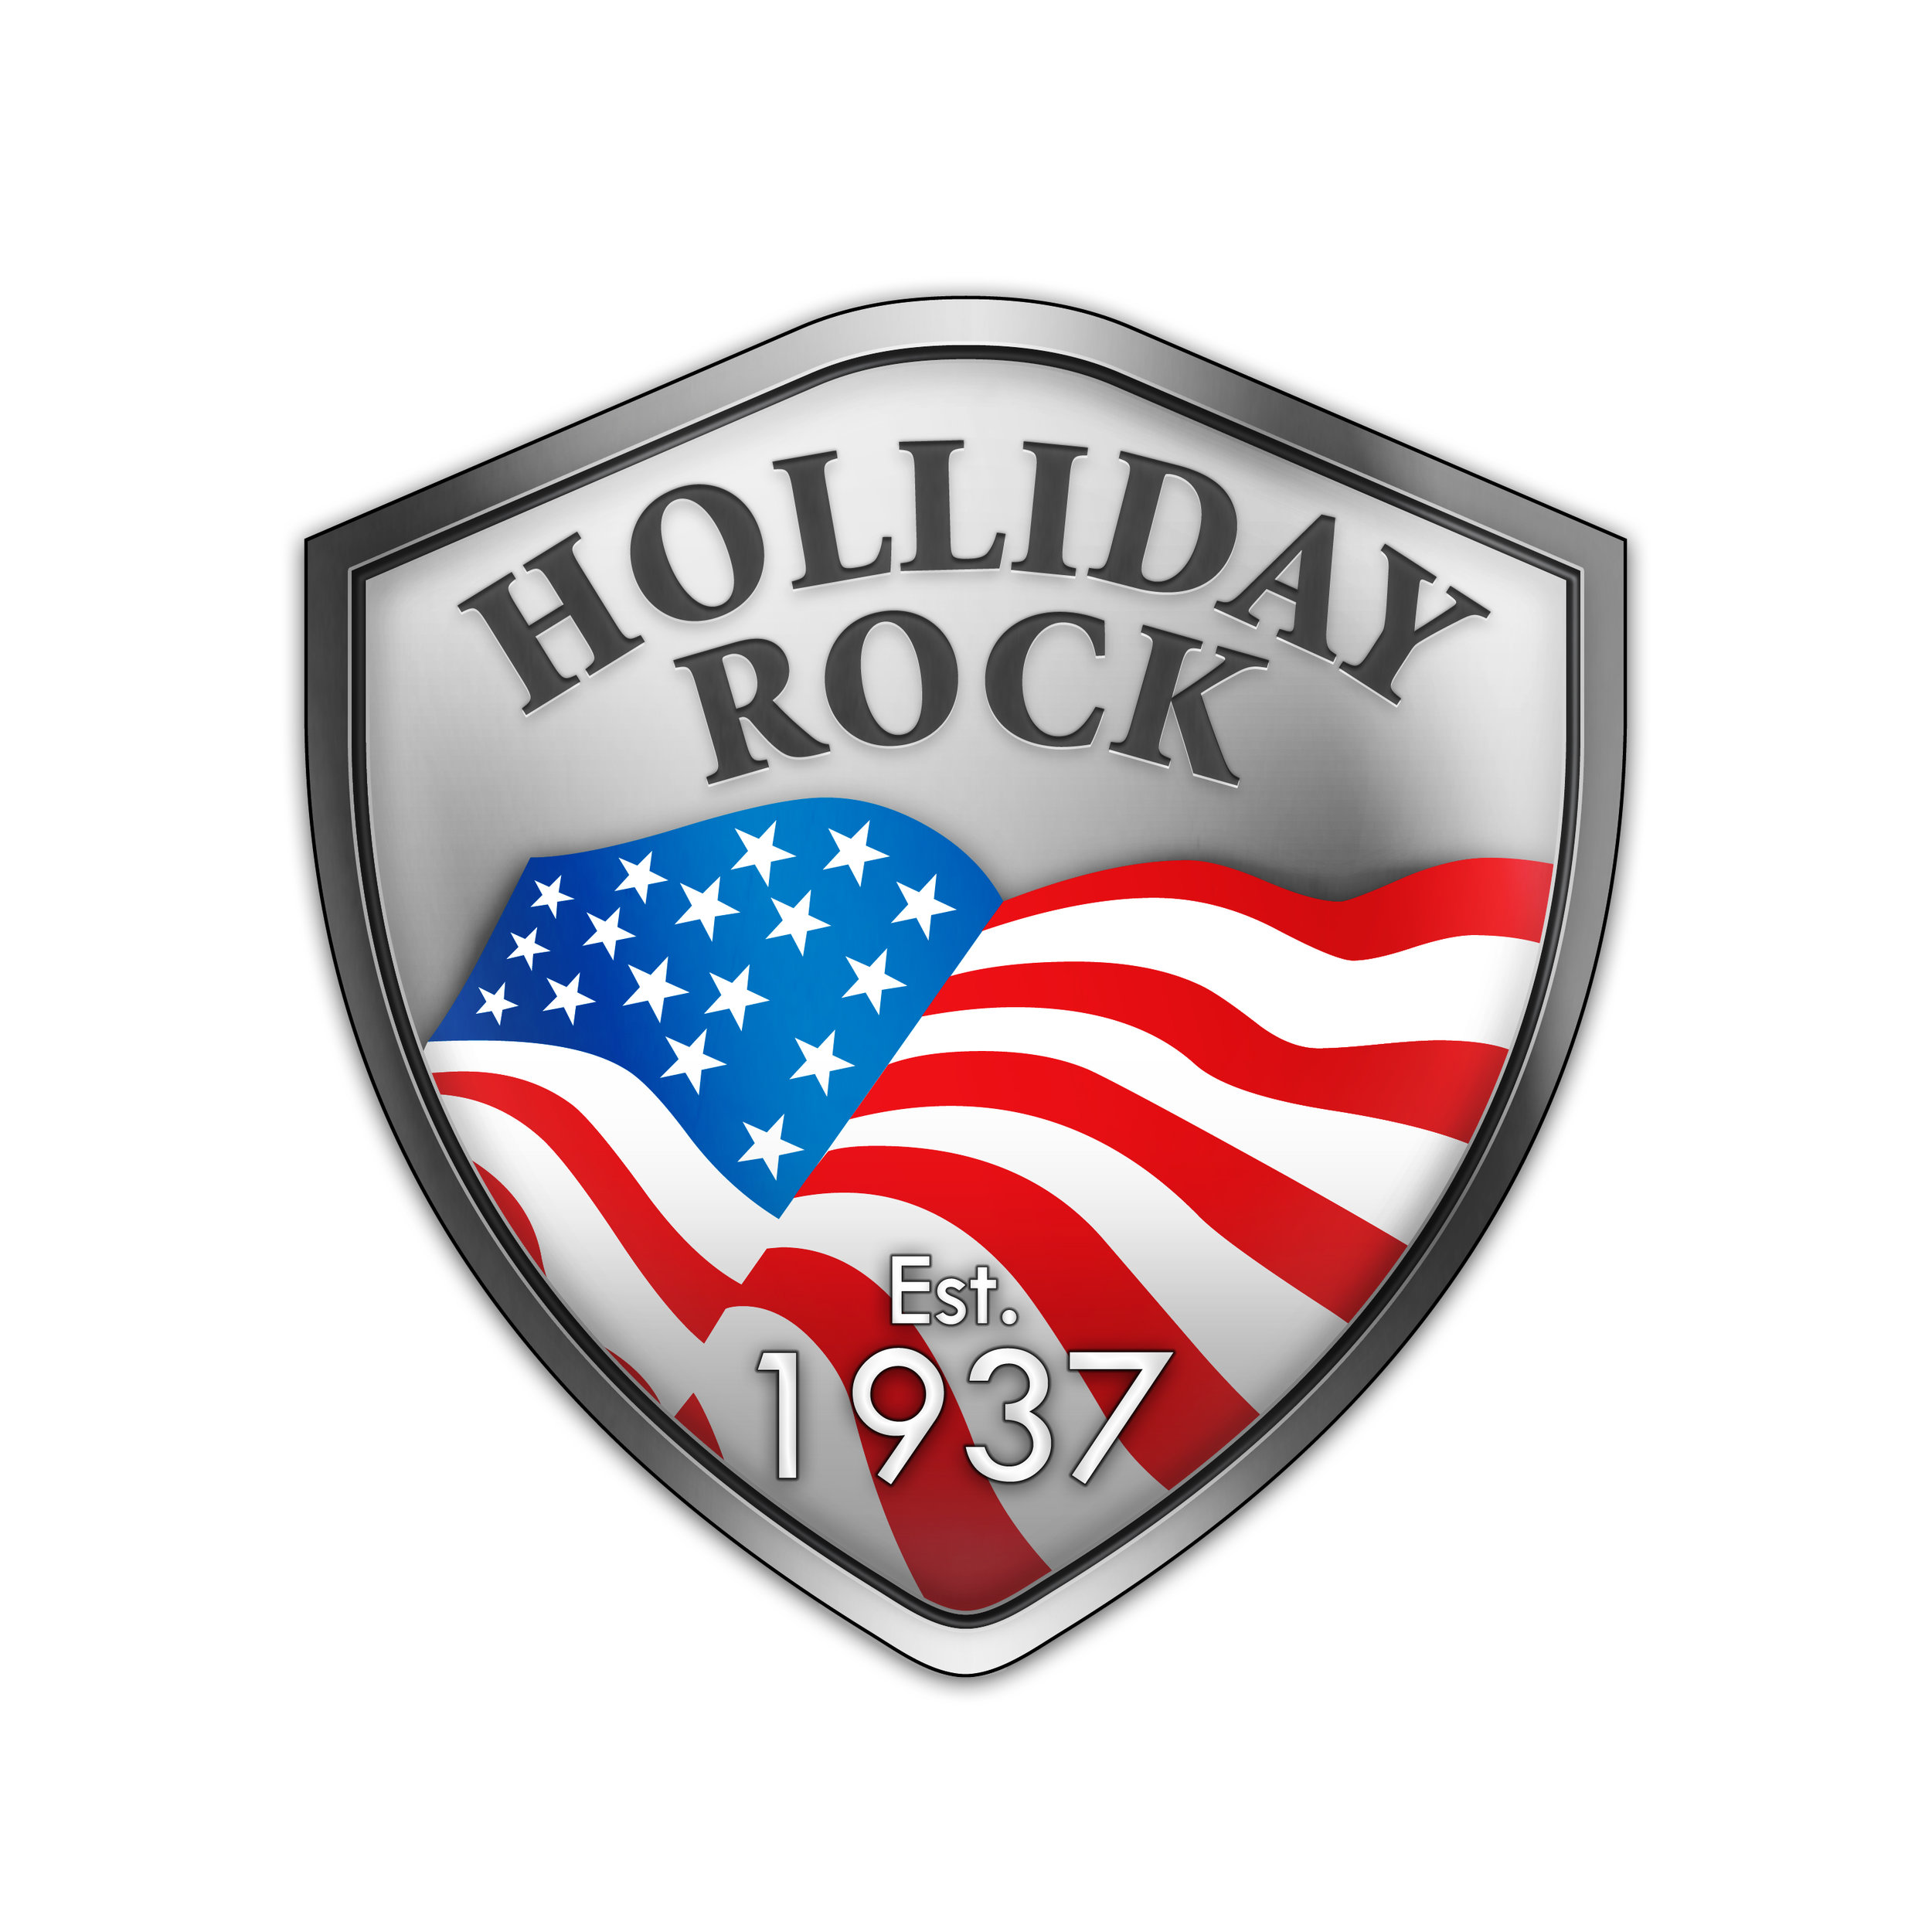 Holliday Rock 2013 Logo.jpg